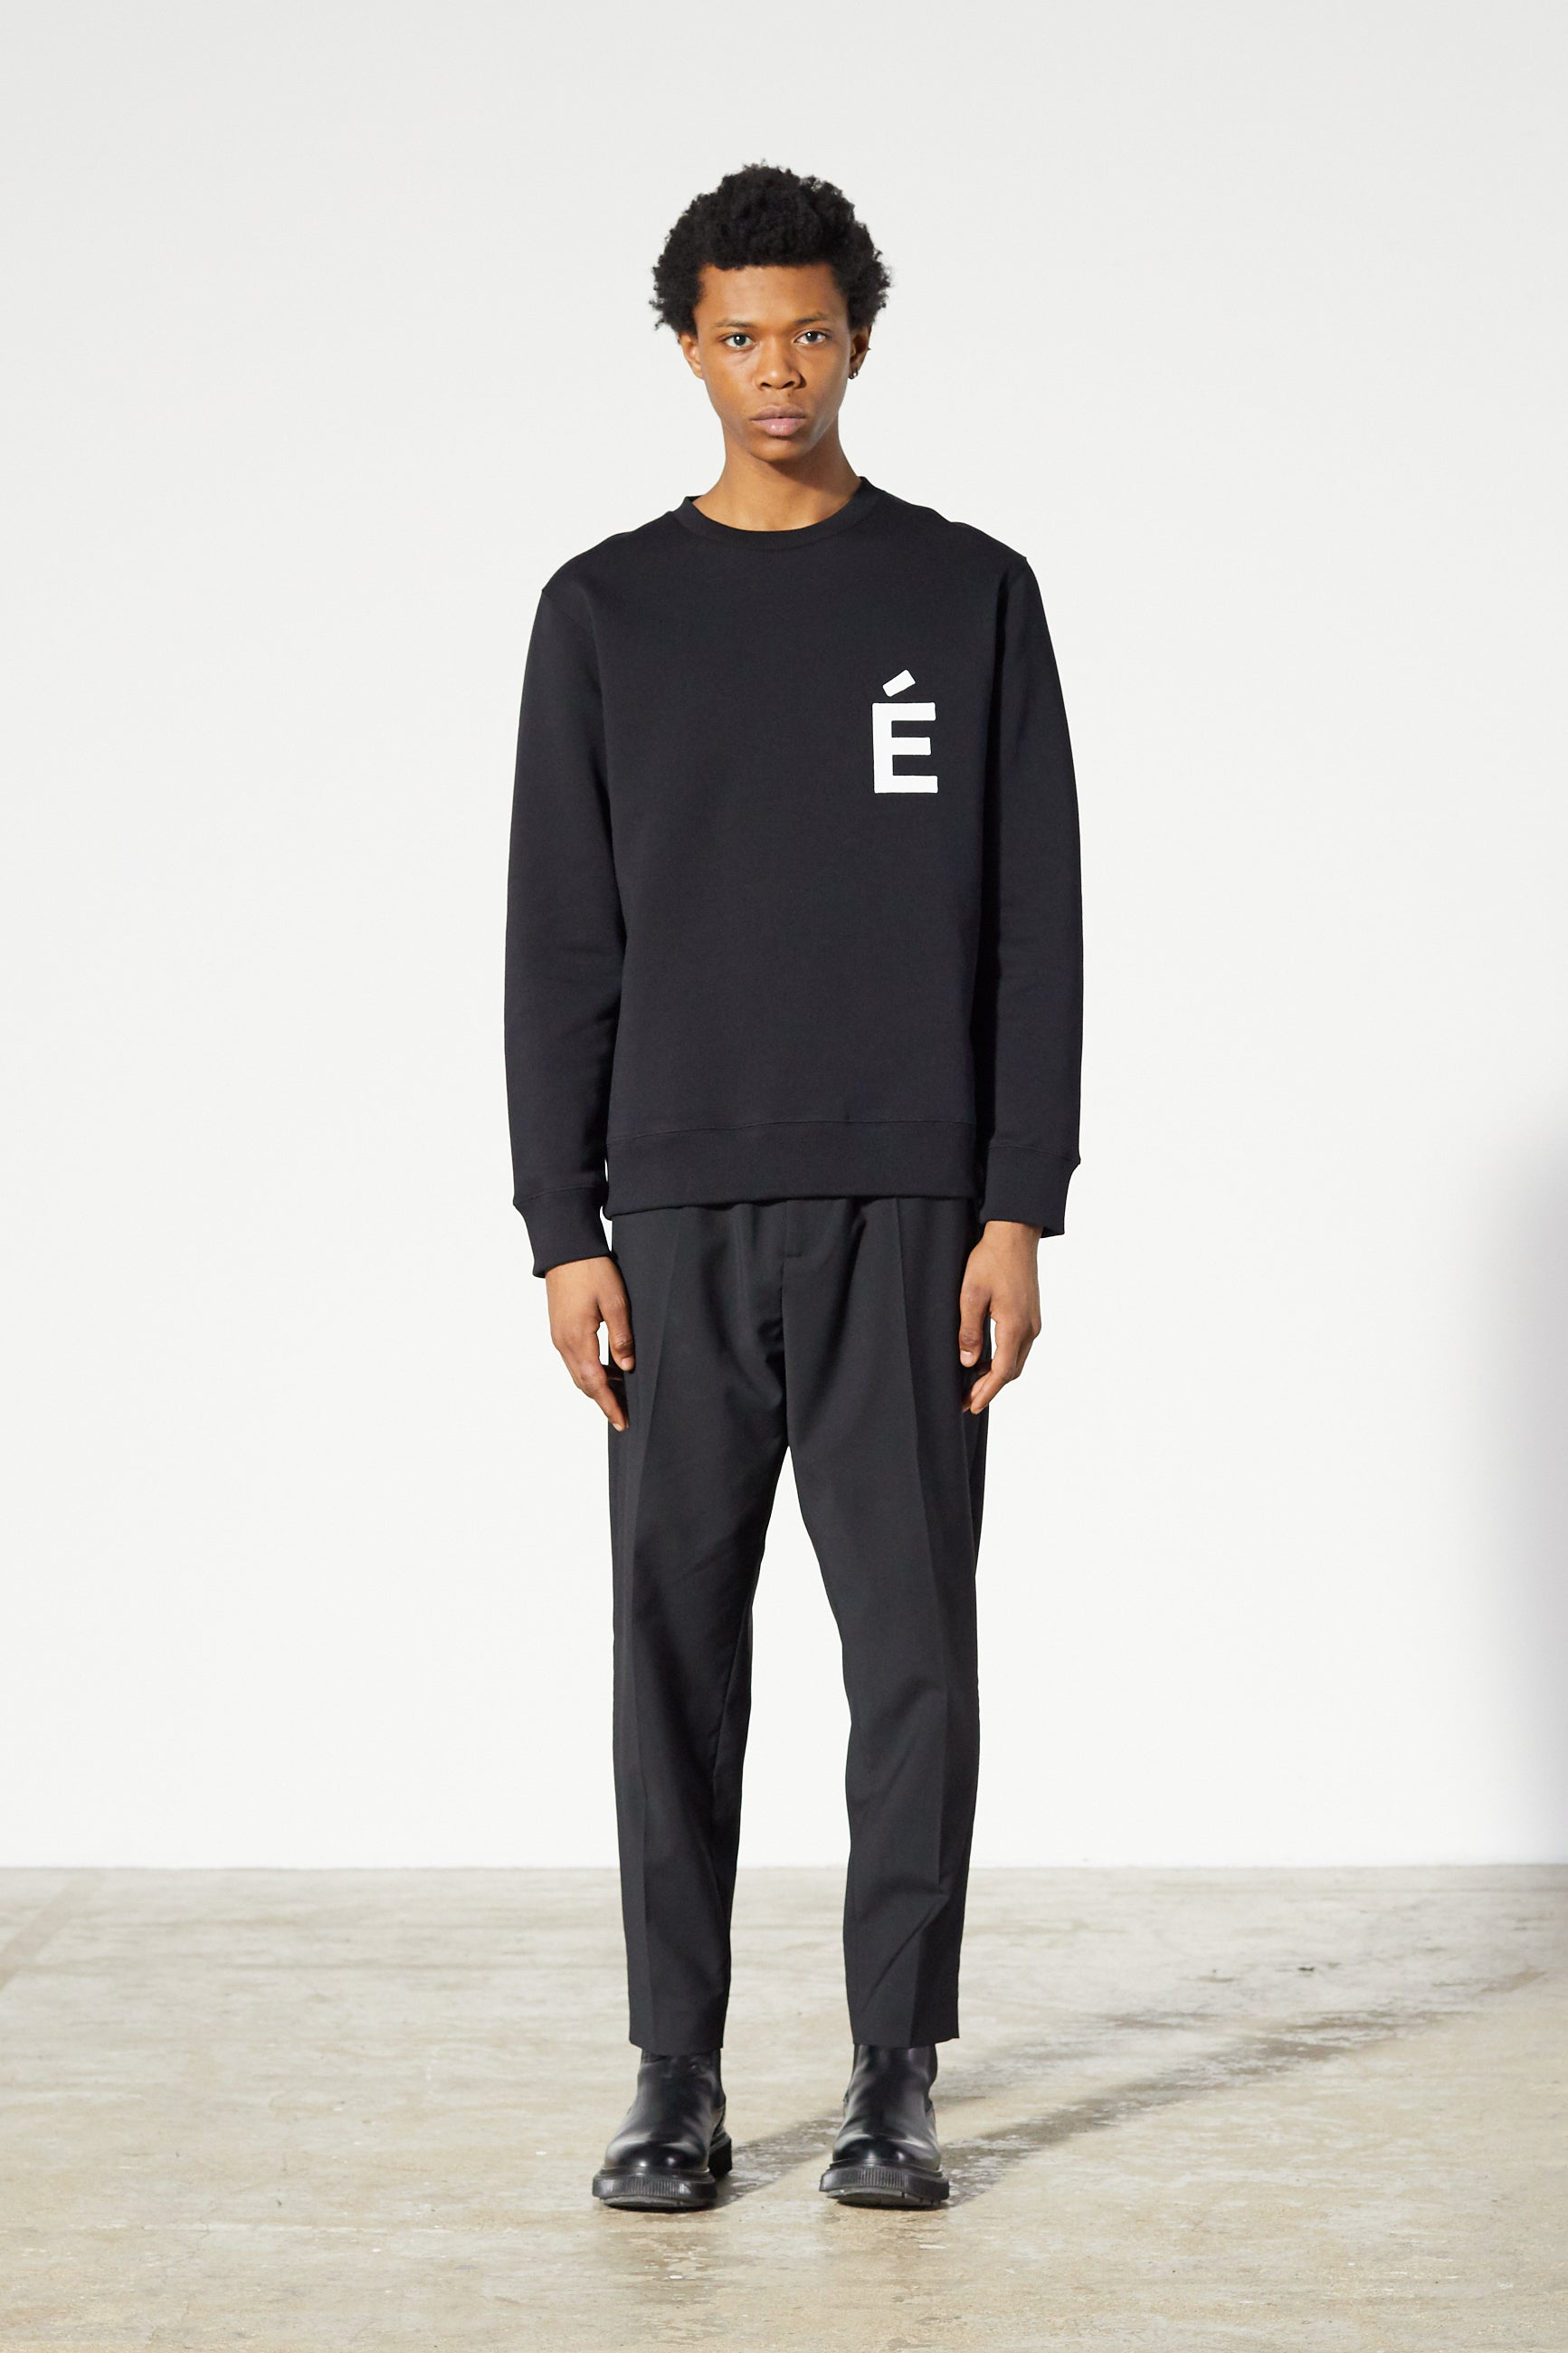 Études Story Patch Black Sweatshirt 1